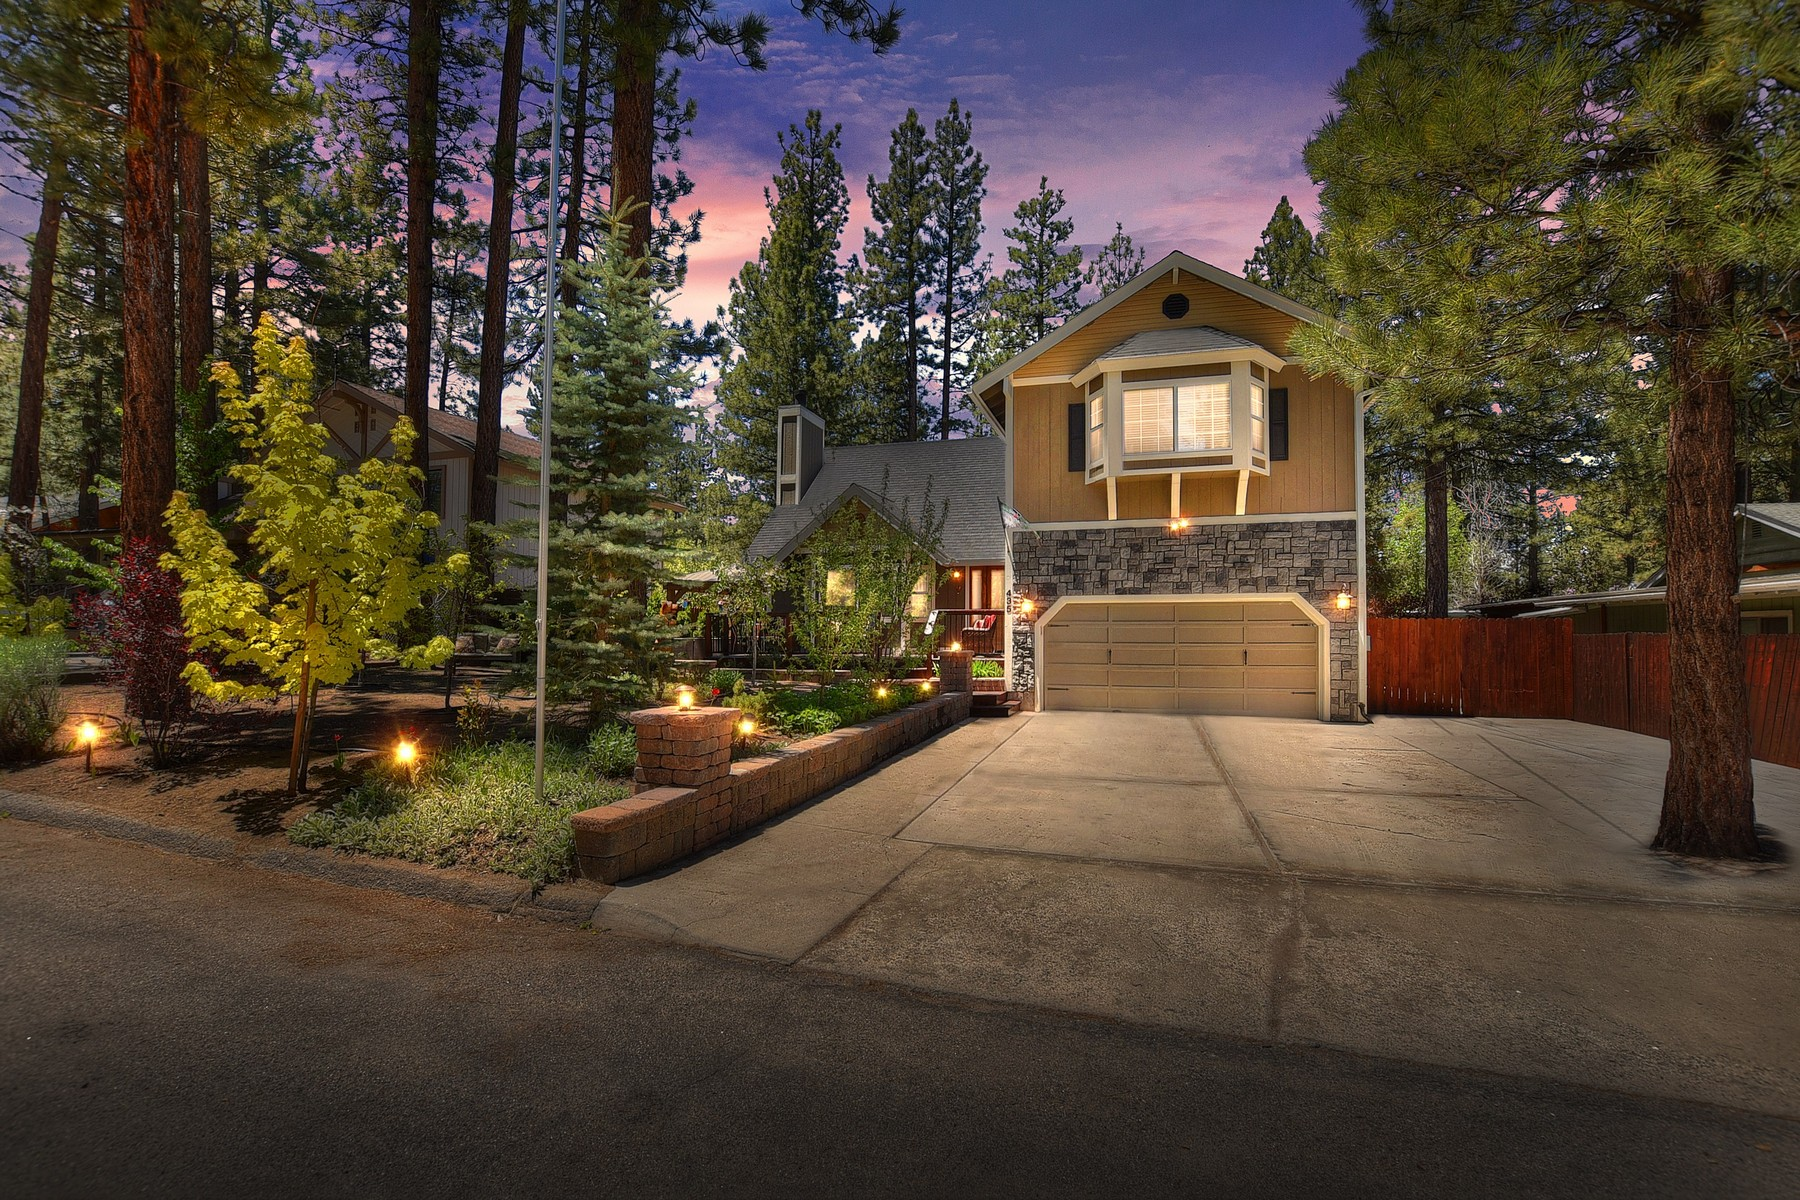 Single Family Homes for Active at Big Bear City, California 92314 435 Belmont Drive Big Bear City, California 92314 United States